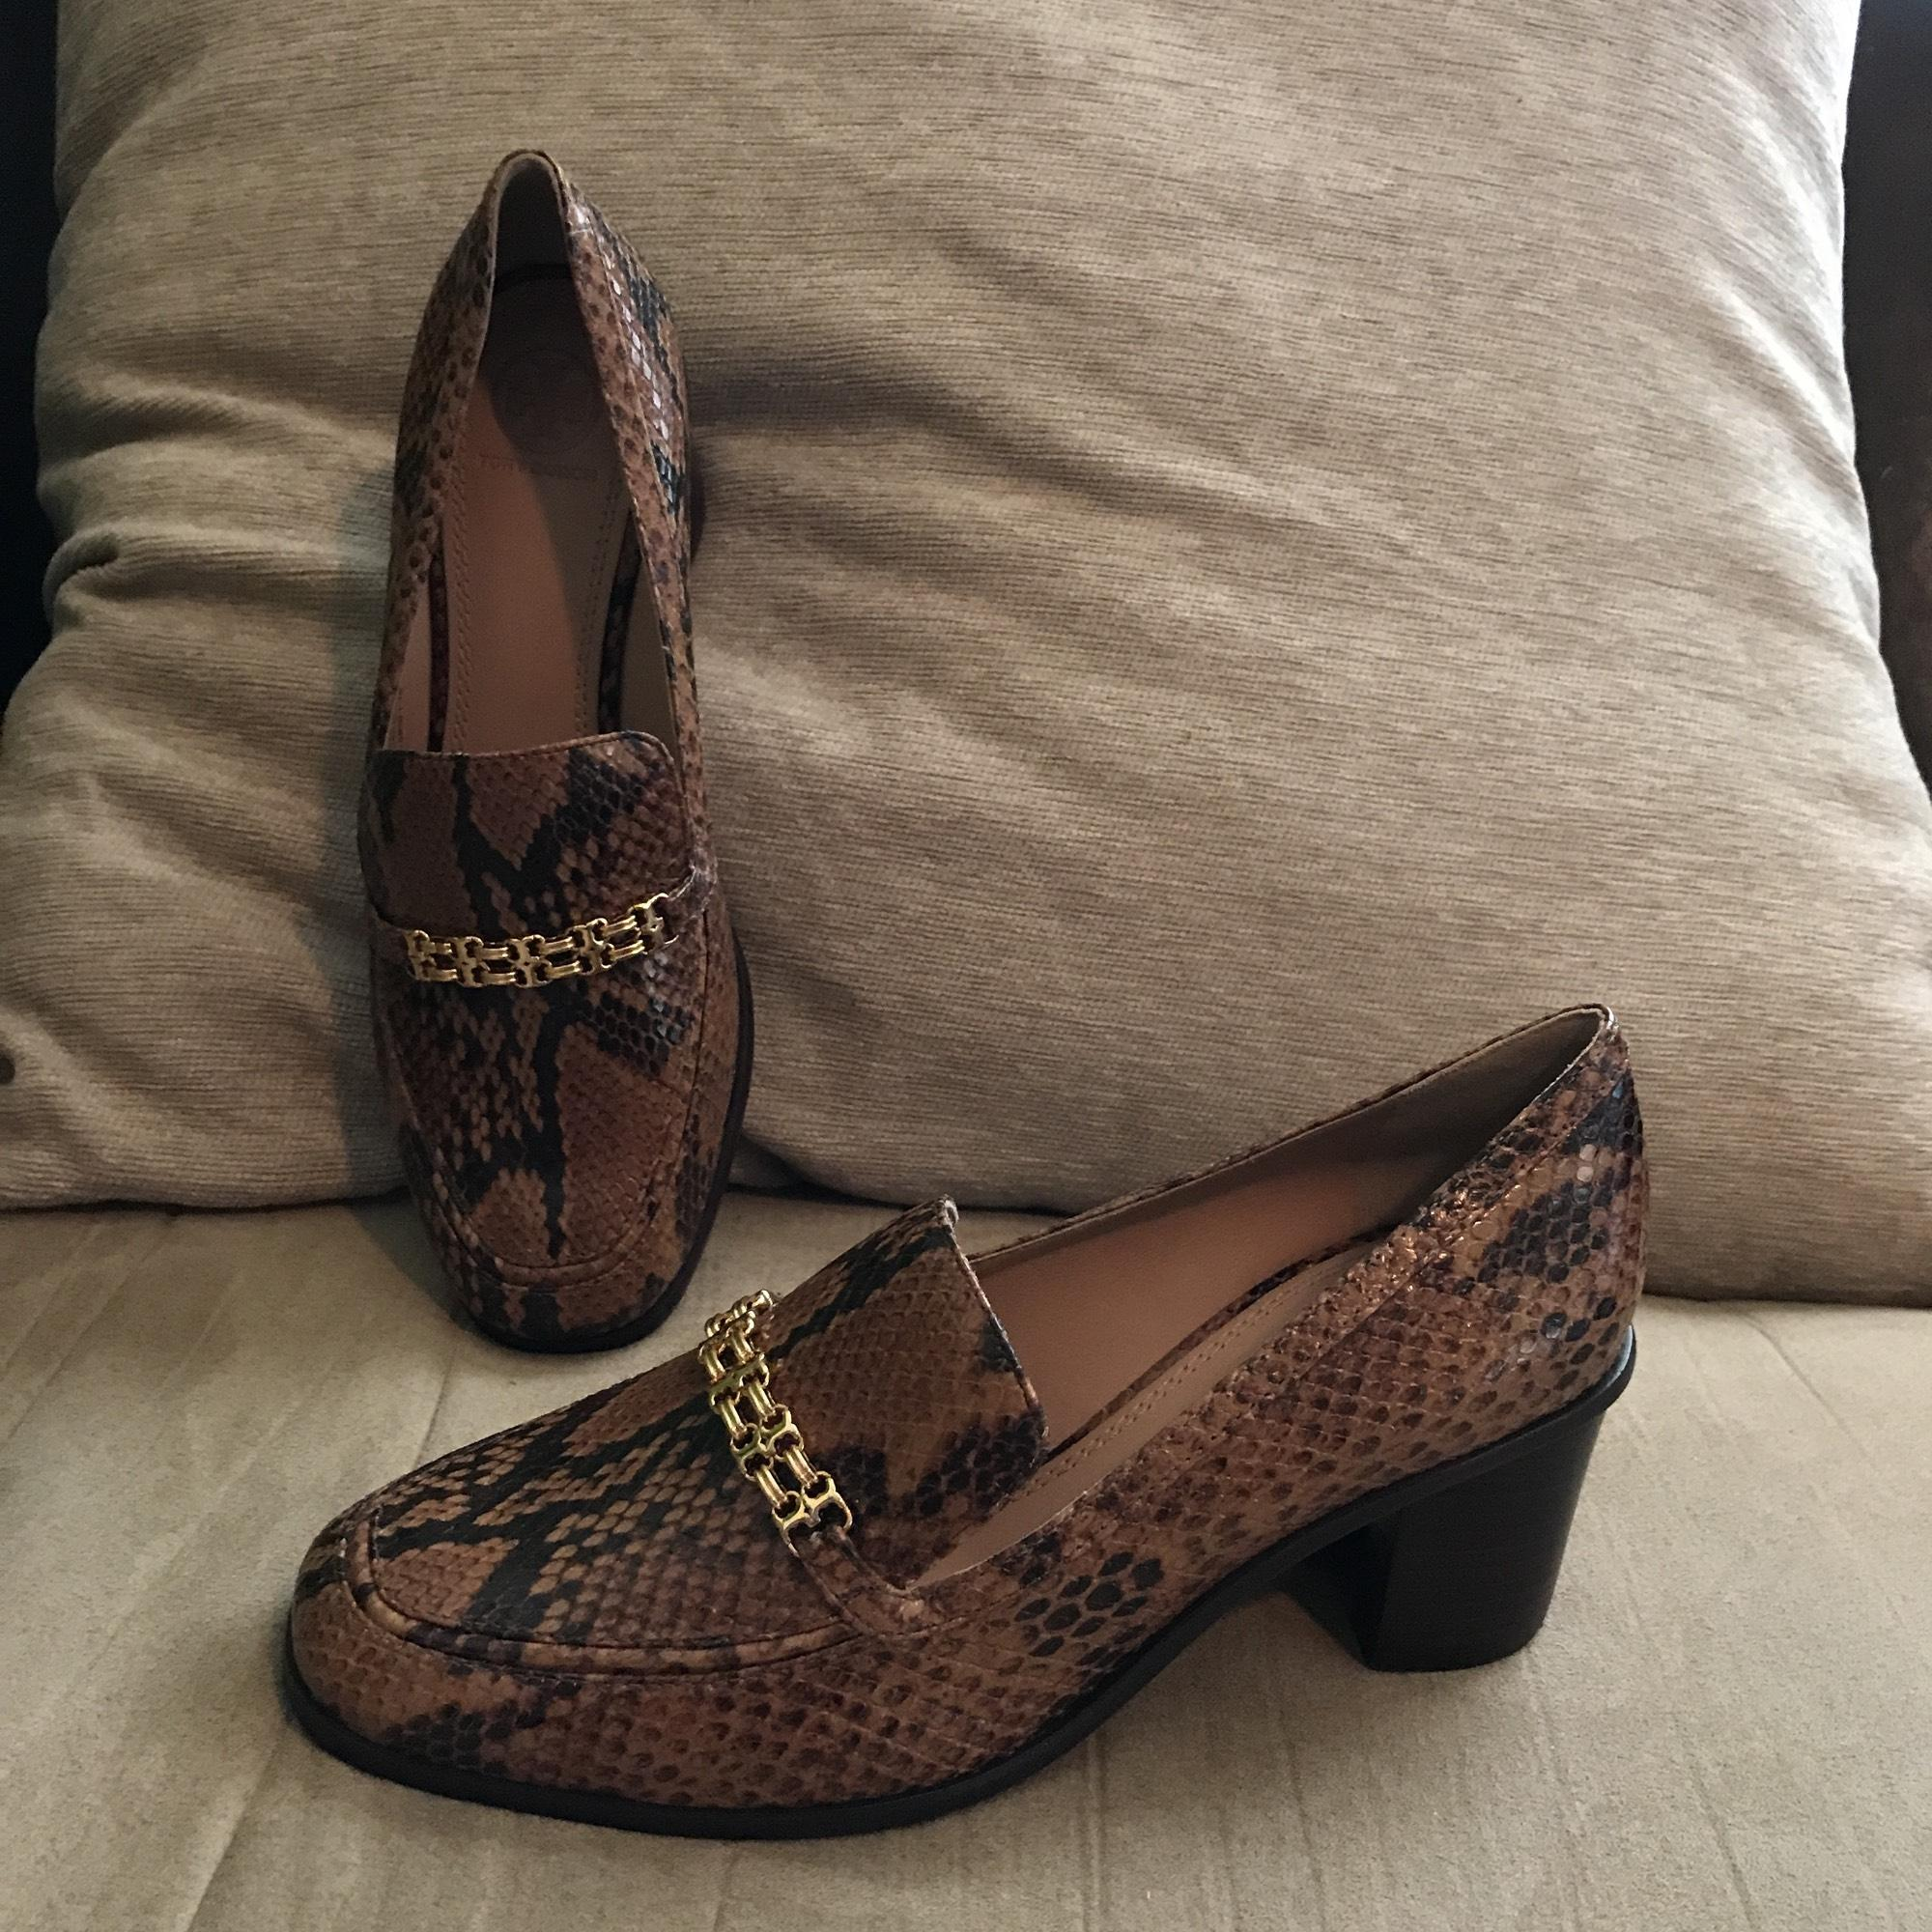 d730bfe9a05ddf ... ireland tory burch leather python snakeskin loafers slip ons brown  black flats 15e32 8a860